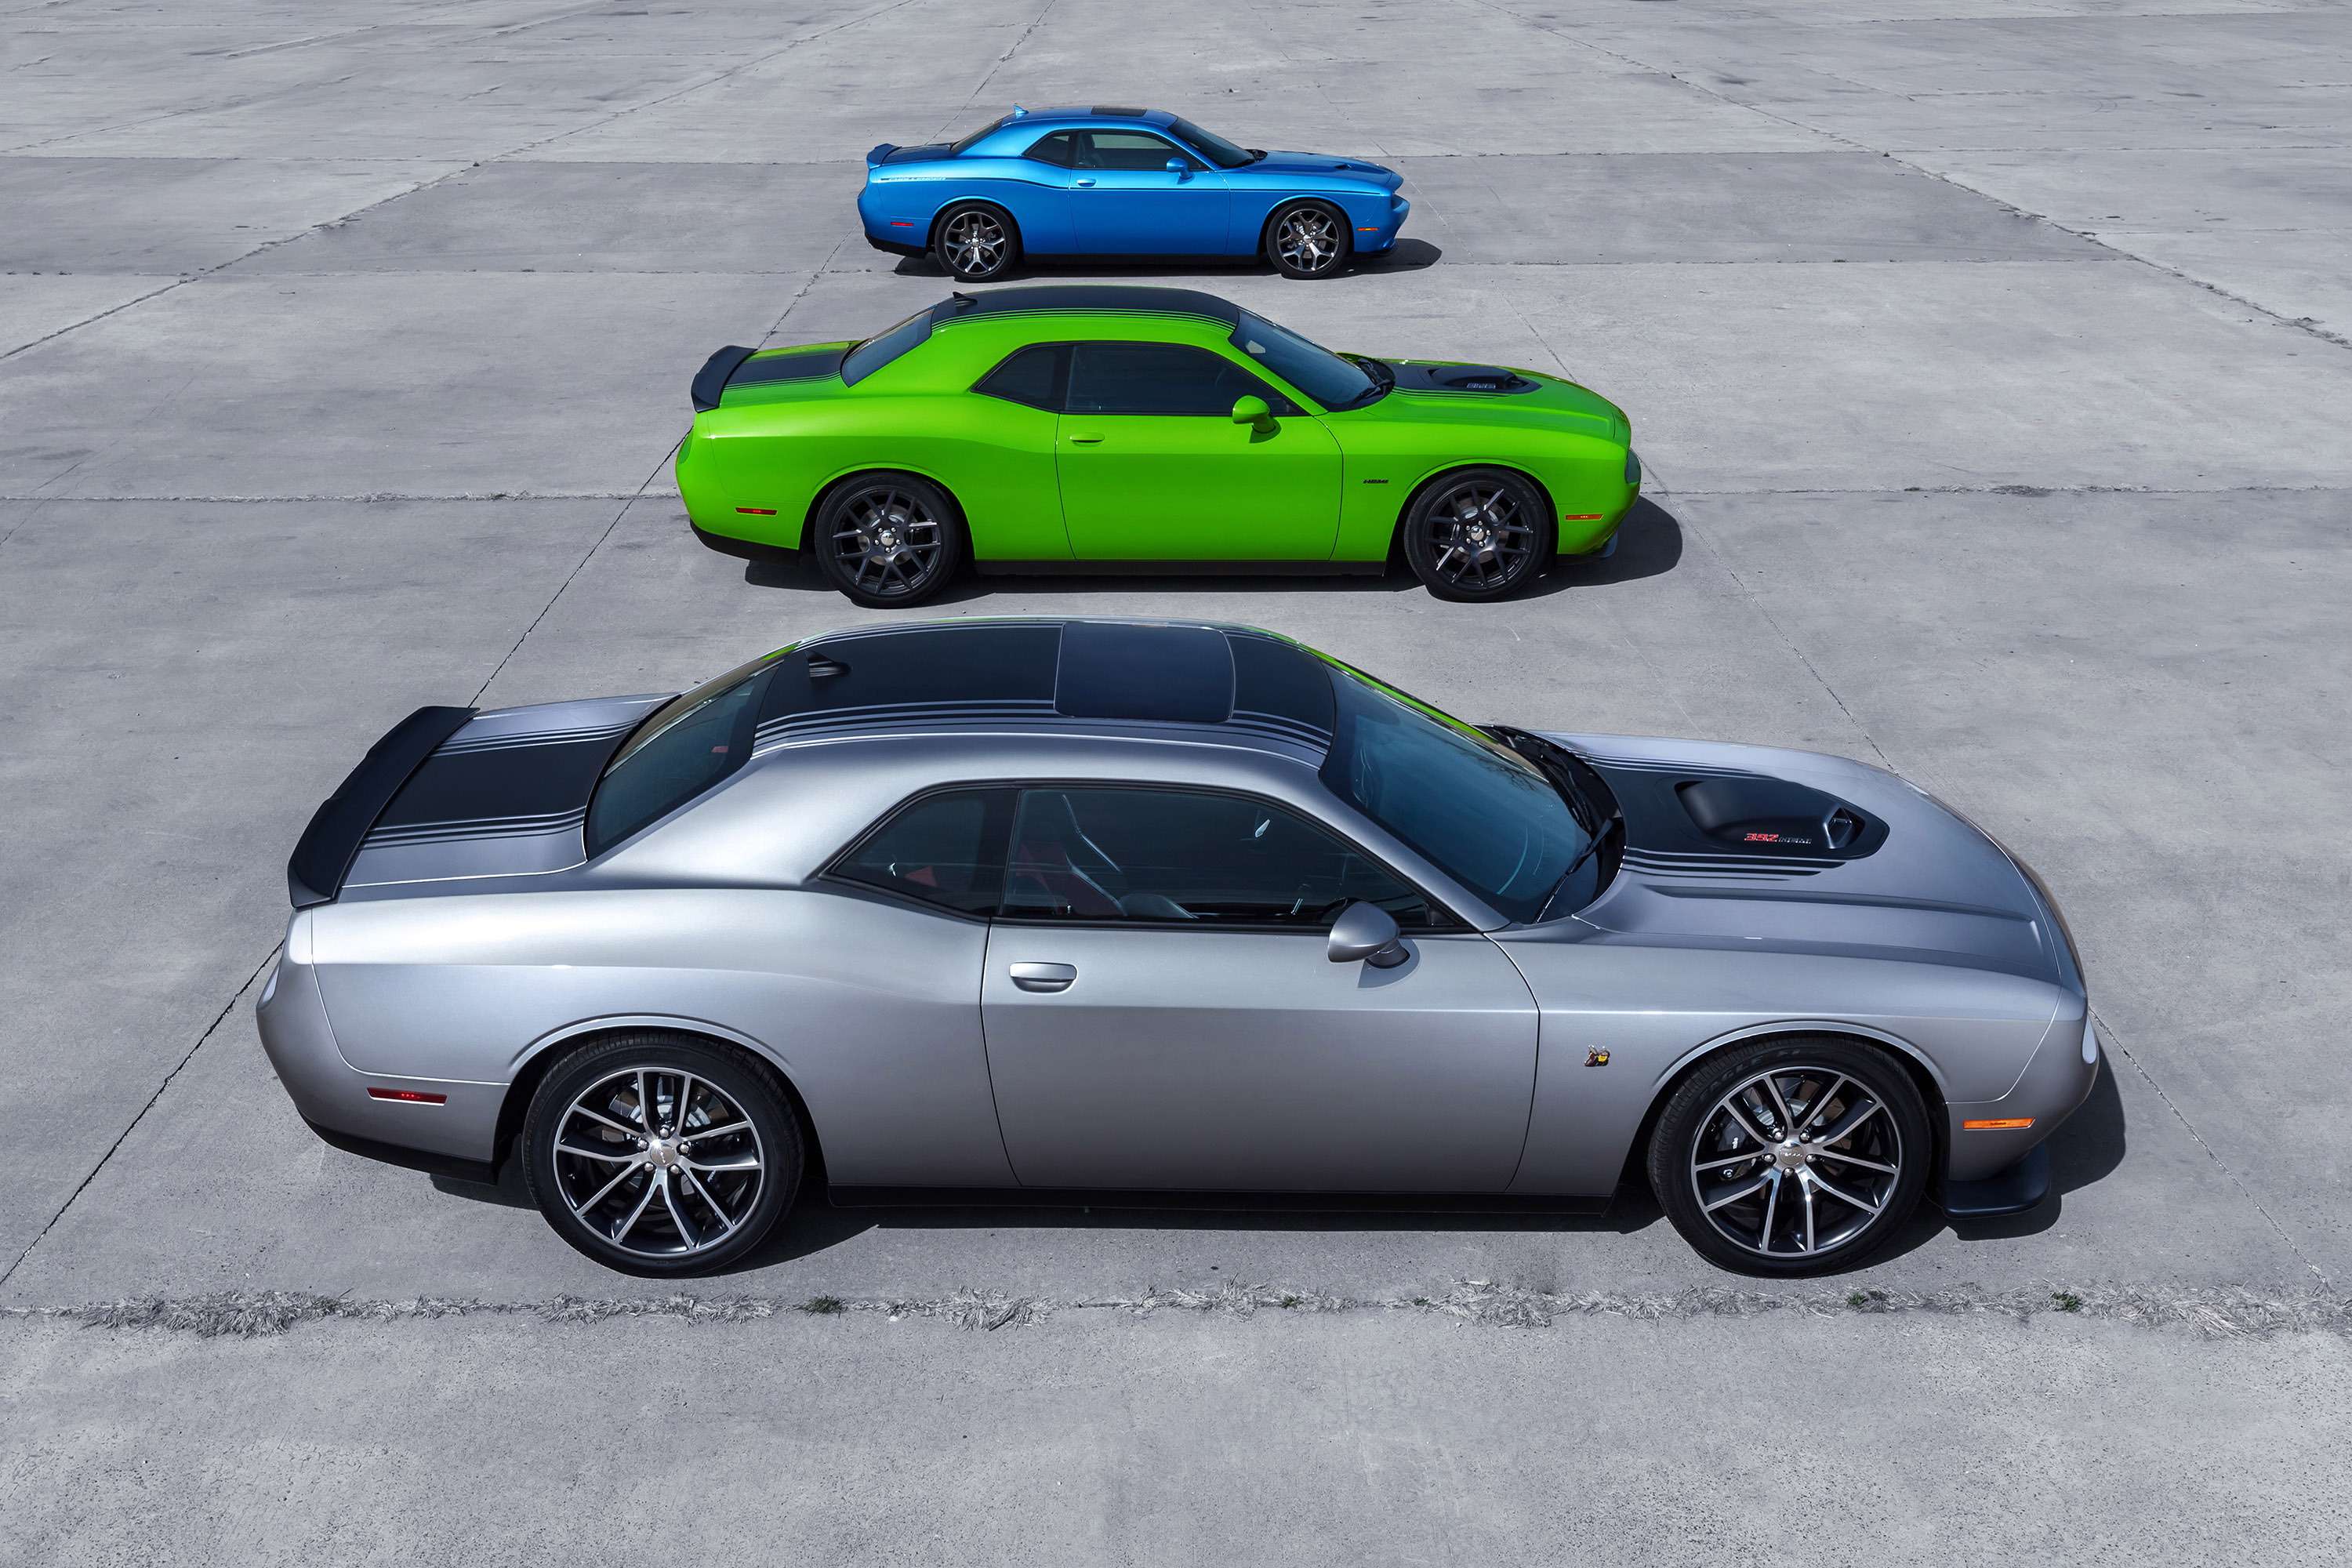 Dodge Challenger Hellcat Green Wallpaper Amazing Preview Fuse Box Fabulous With